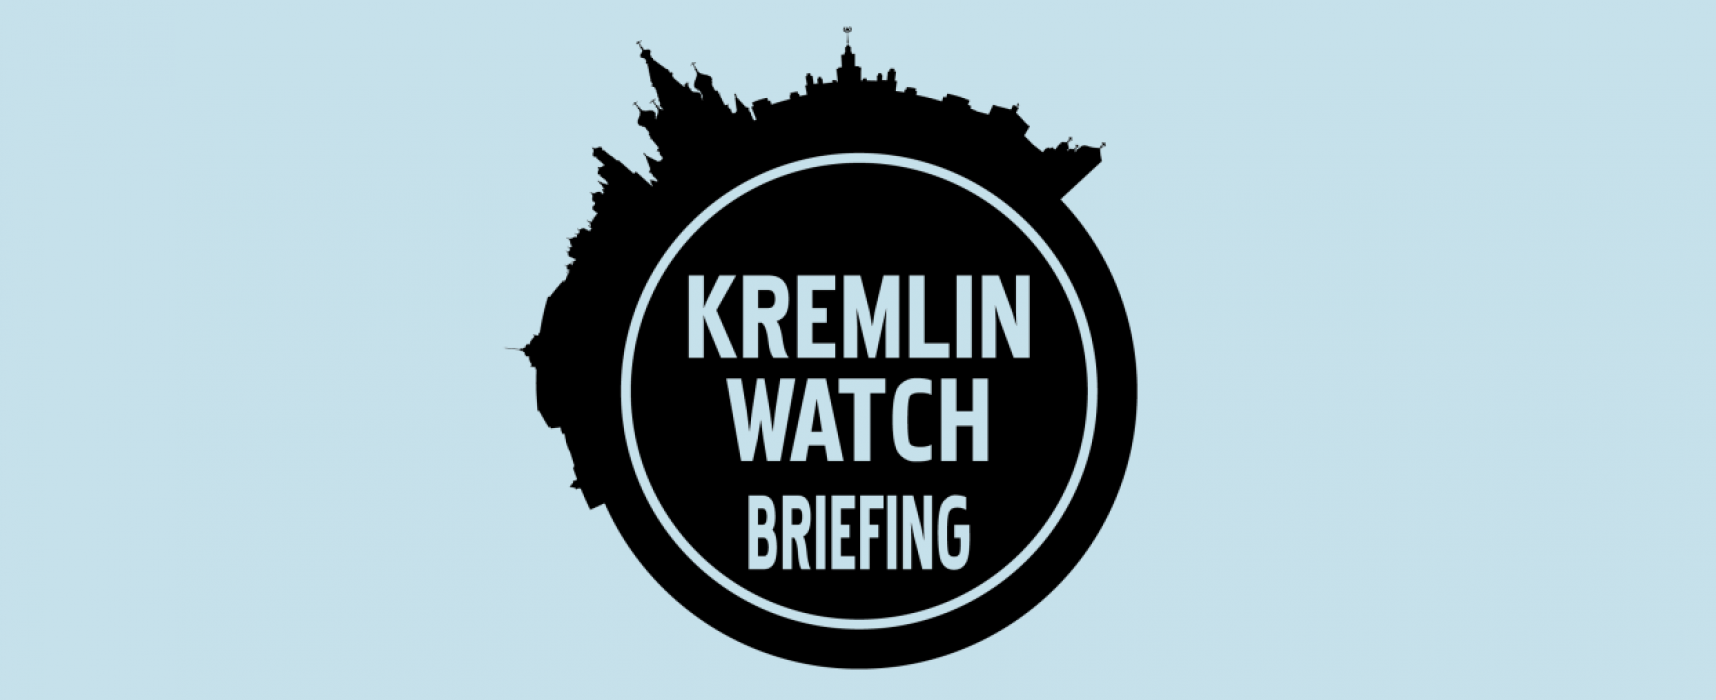 Kremlin Watch Briefing: Three former Russian intelligence officers charged in the MH17 investigation